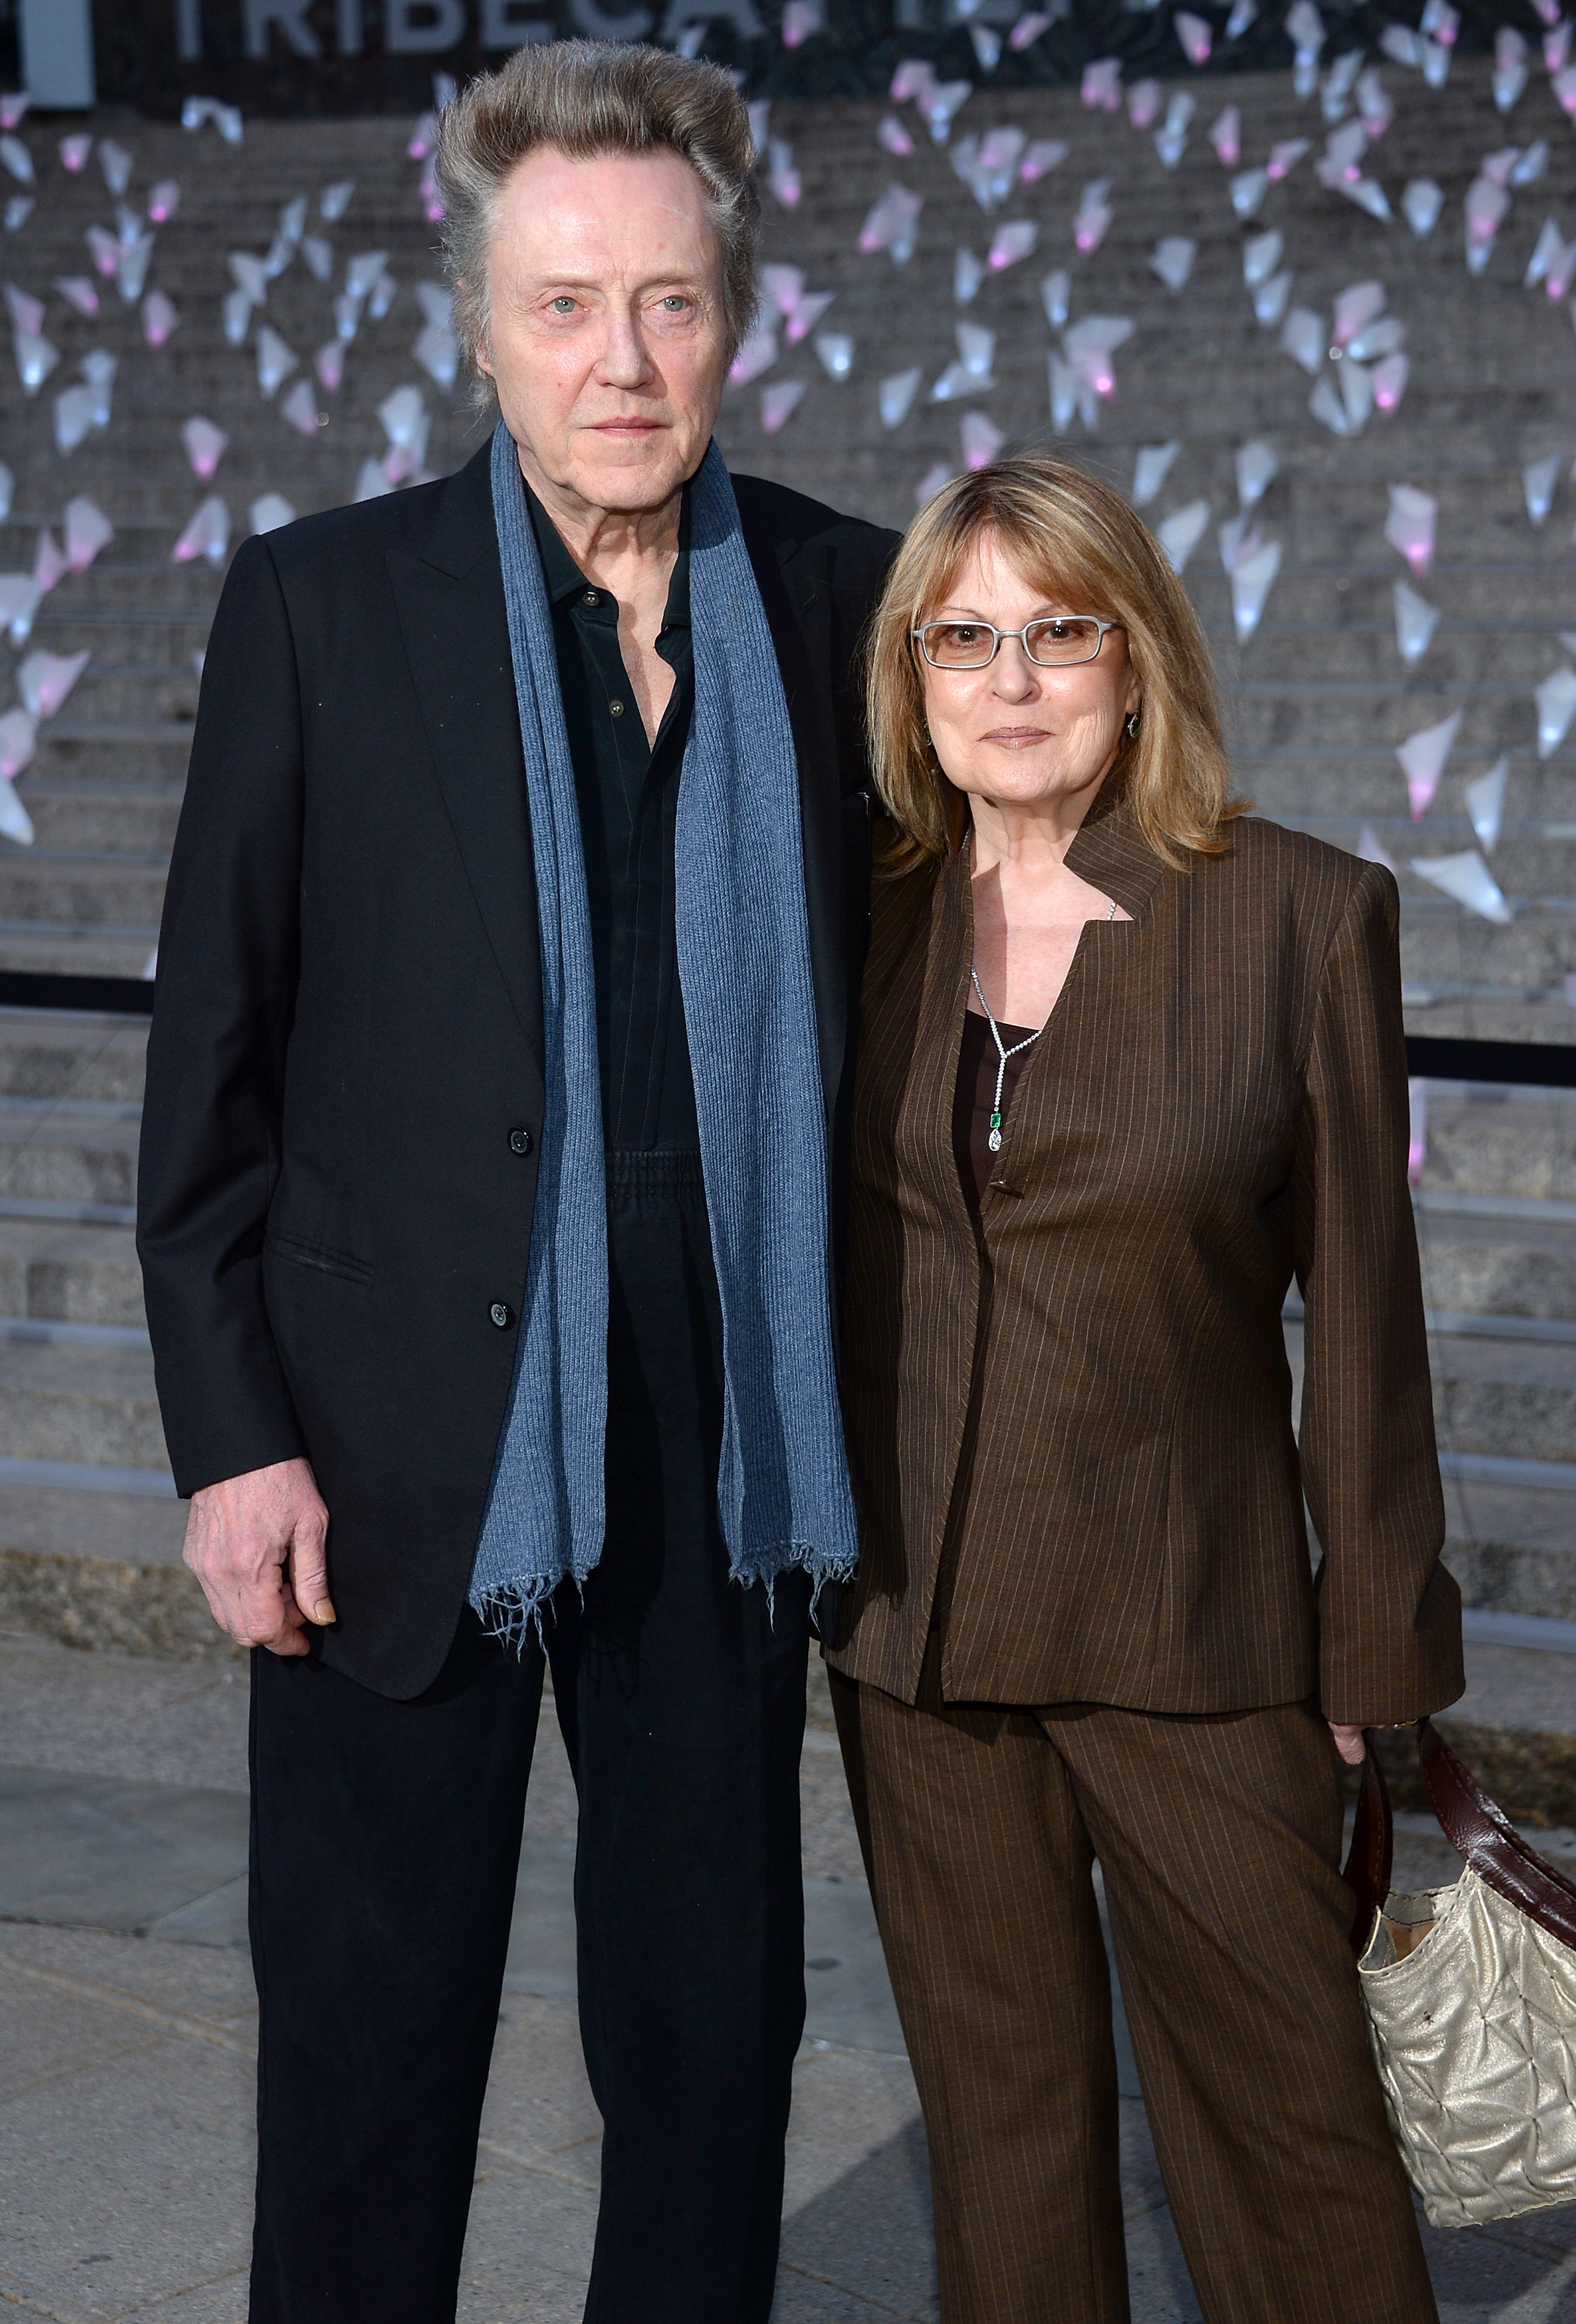 Christopher Walken attended the Vanity Fair party with his wife, Ge